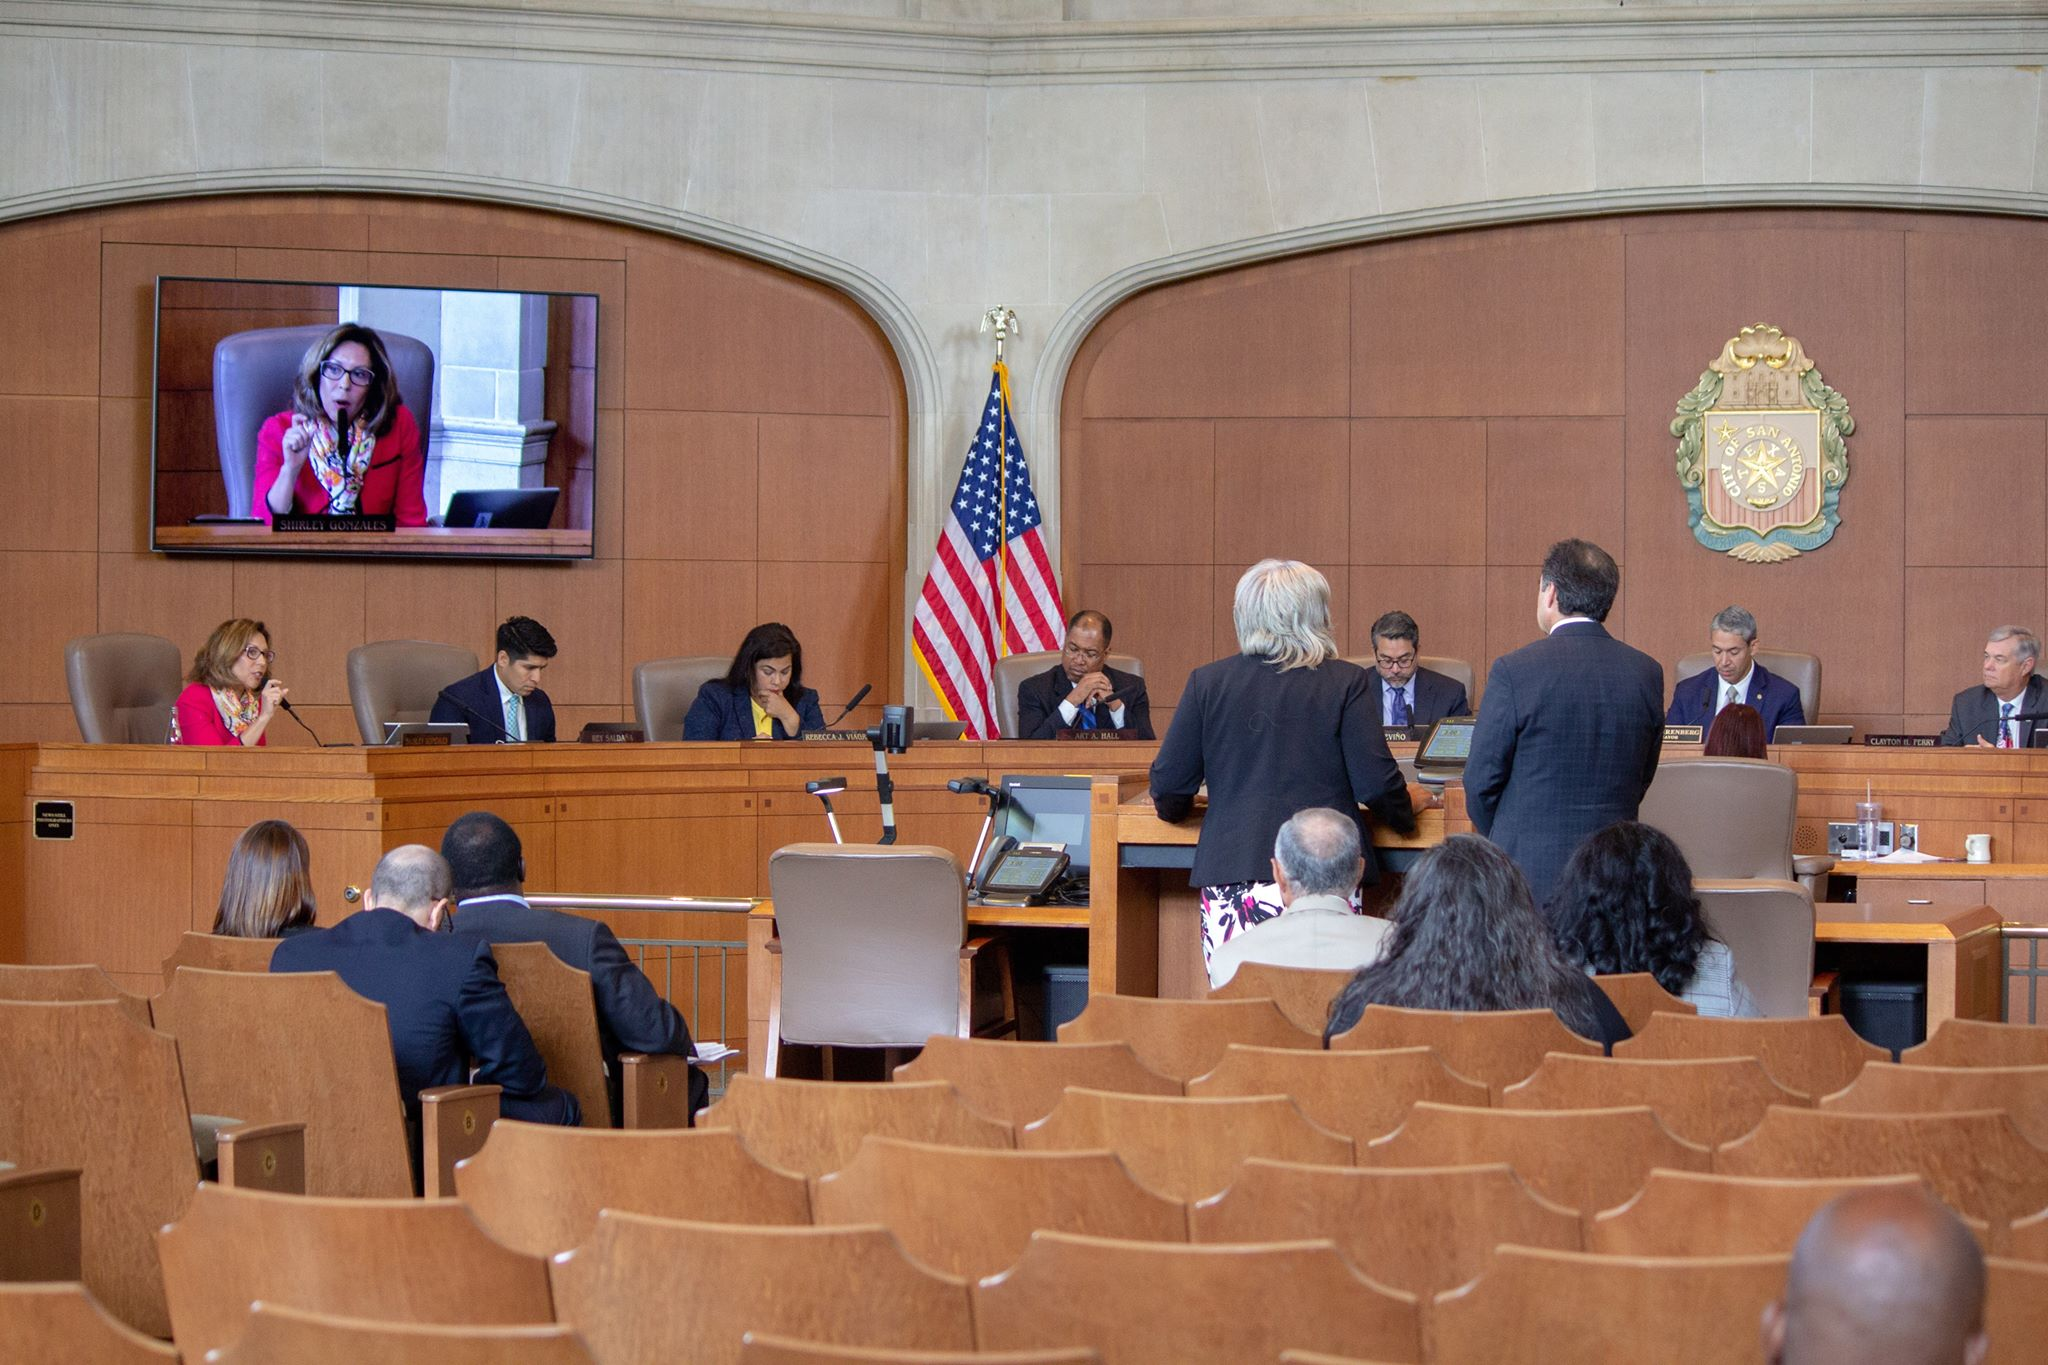 The council deliberates. (Photo by  William Timmerman  - Photographer, The San Antonio Sentinel)